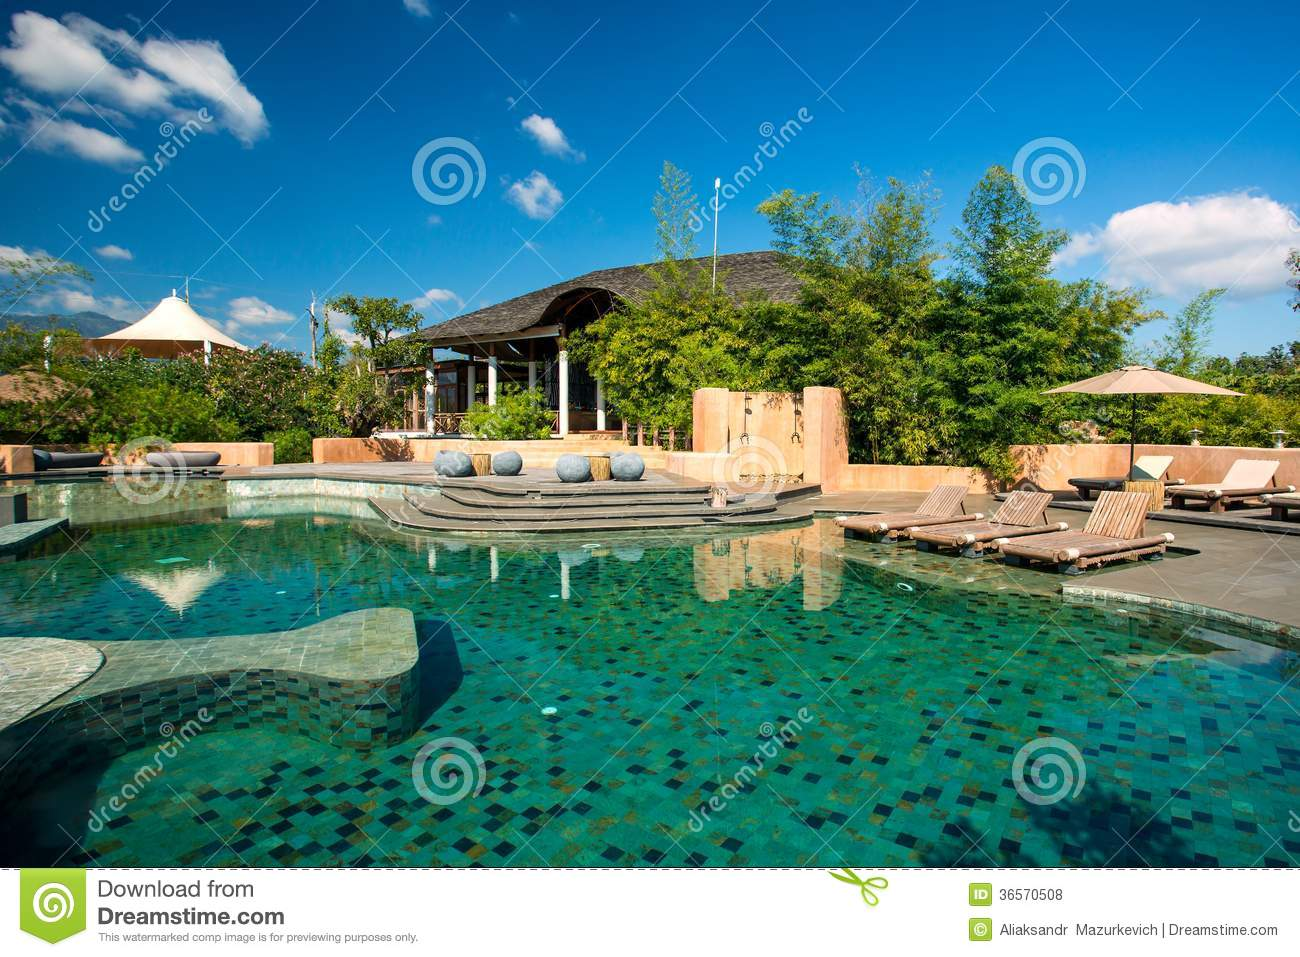 Swimming Pool In The Luxury Resort Royalty Free Stock Photos Image 36570508